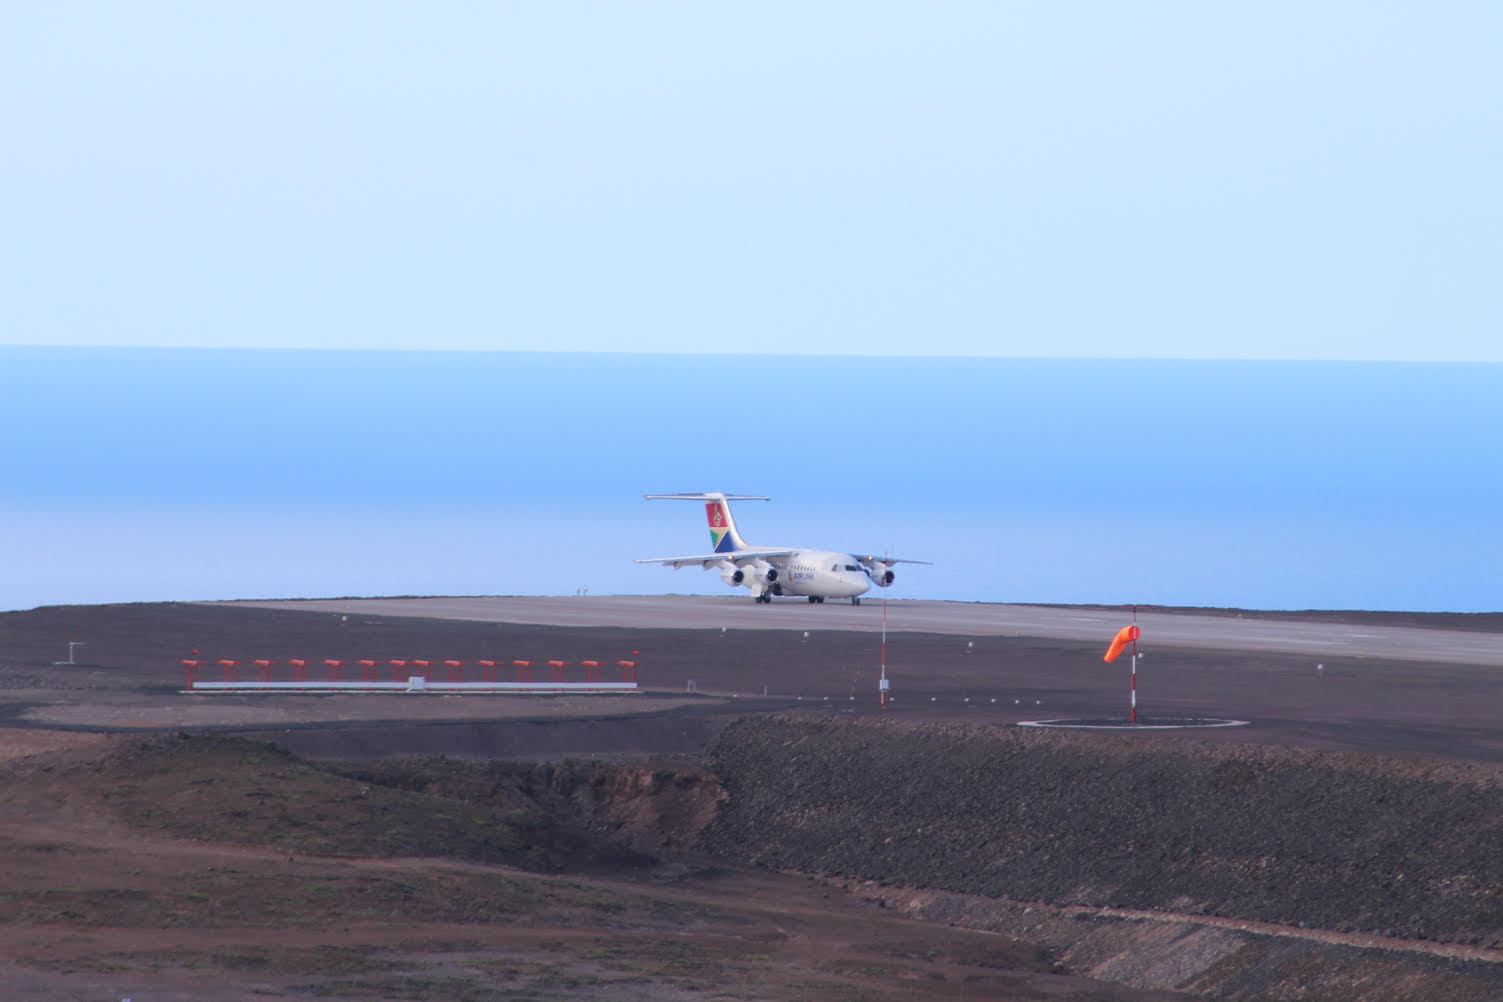 St helena airport wind shear